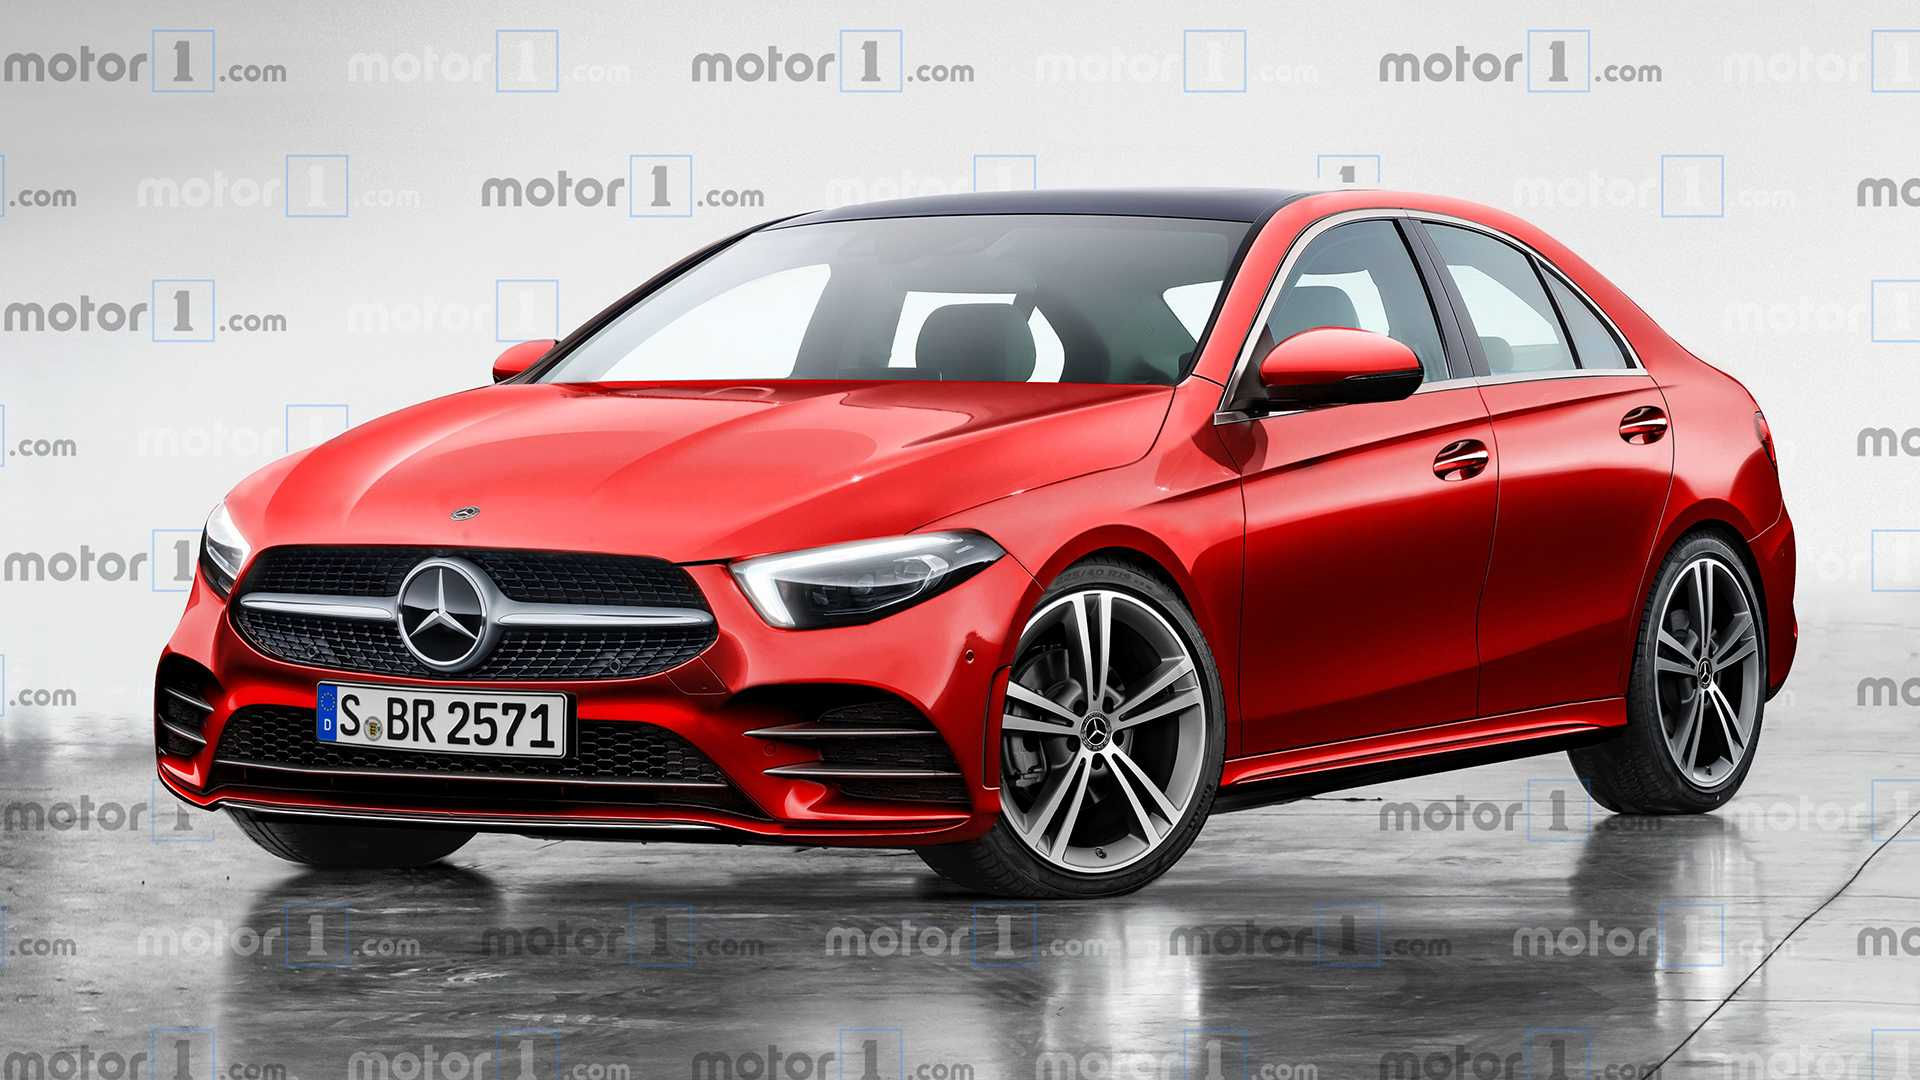 99 Great 2020 Mercedes Benz C Class Release Date with 2020 Mercedes Benz C Class